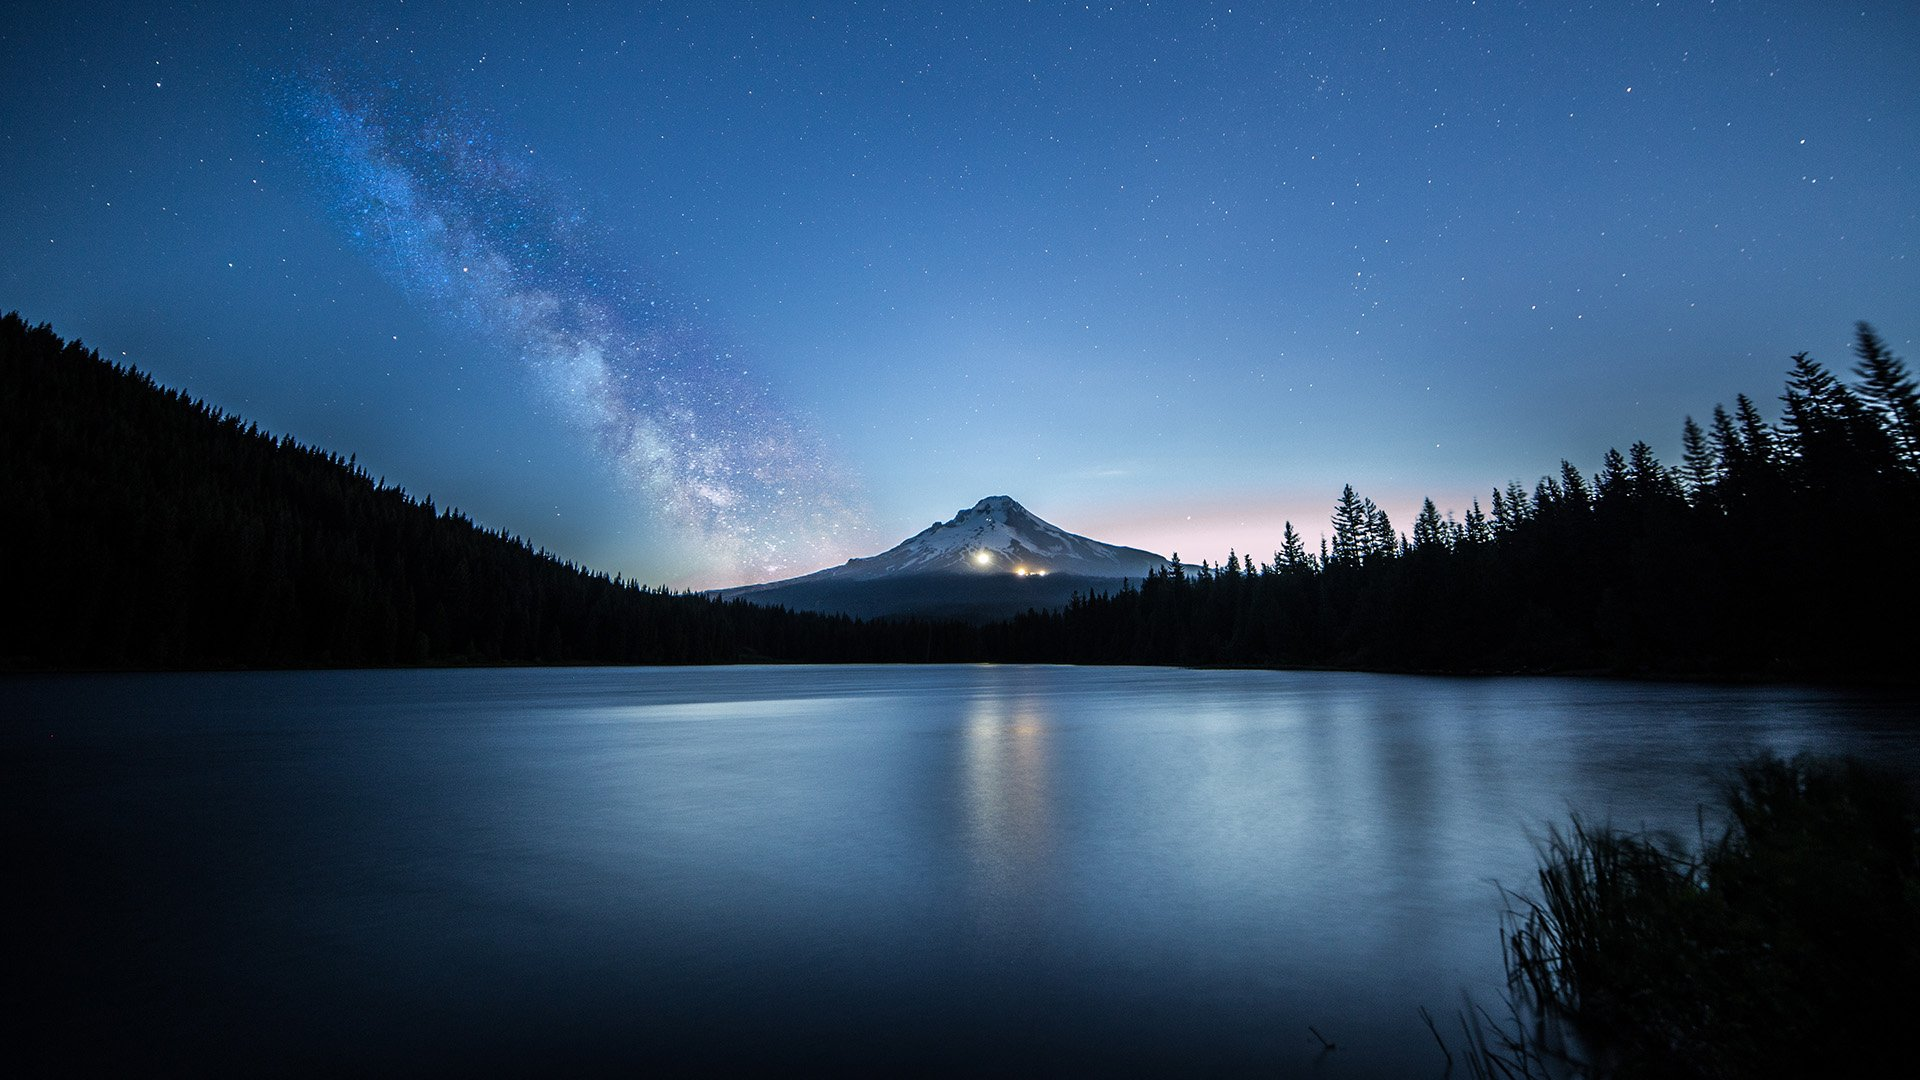 Amazing Milky Way Wallpapers: Page 3 Of Milky Wallpapers, Photos And Desktop Backgrounds